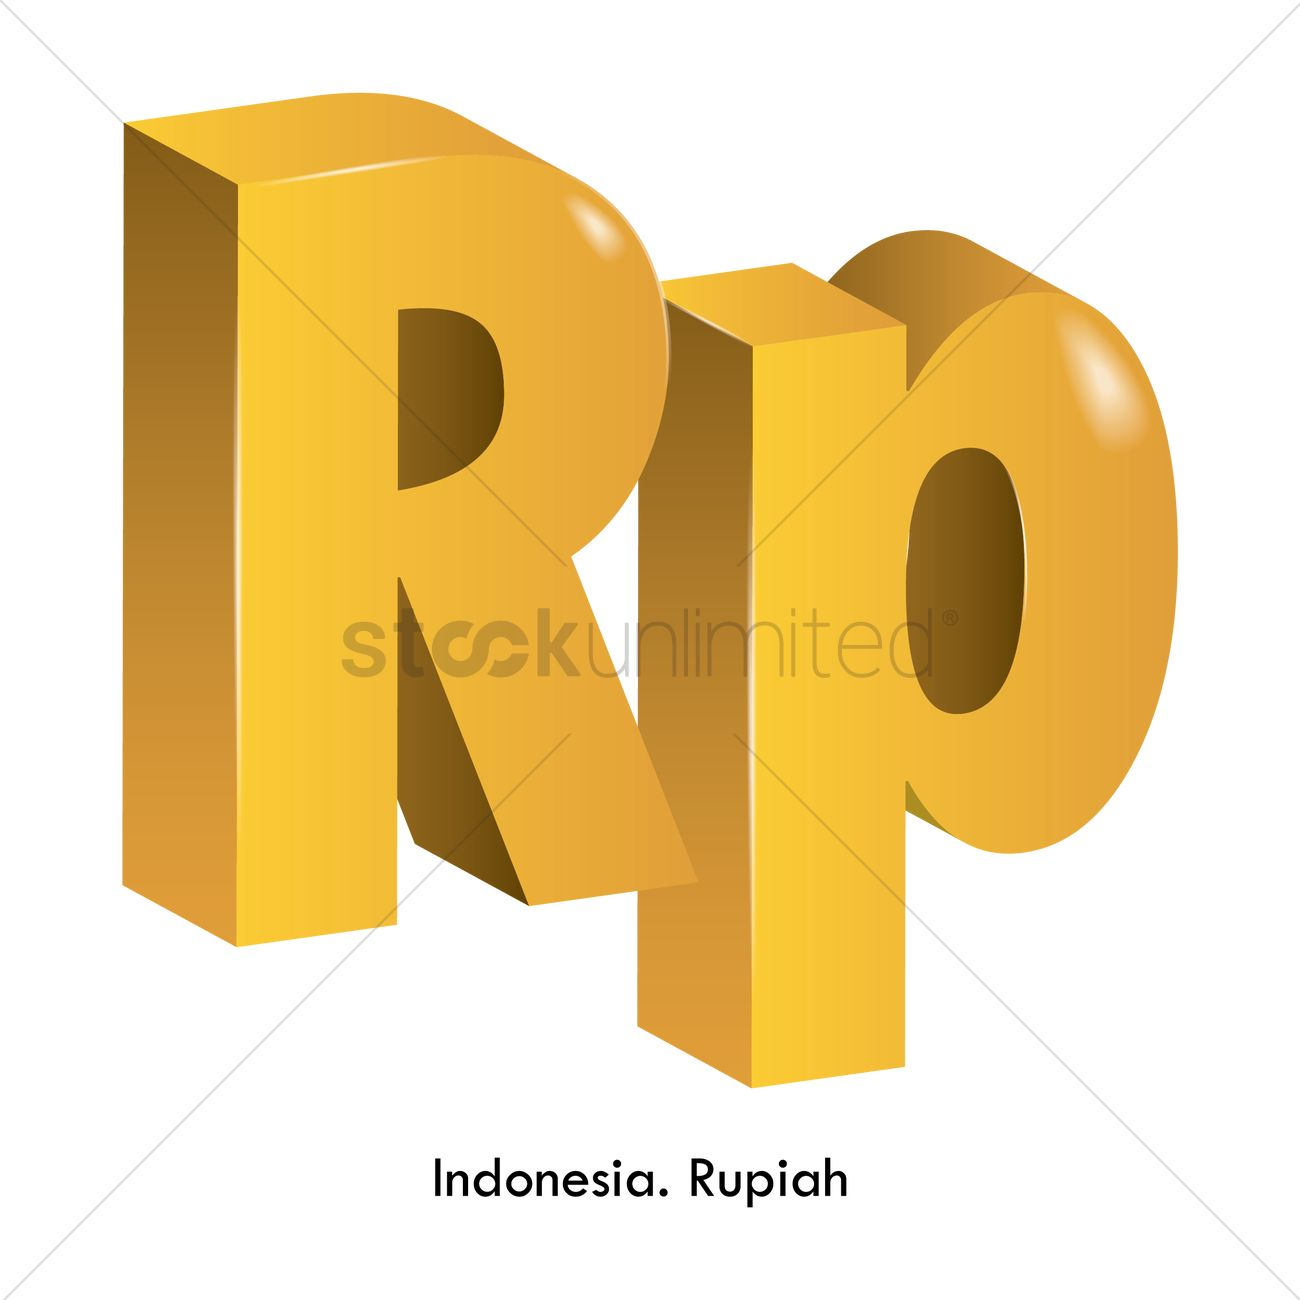 Icon icons symbol symbols sign signs money economy economies rupiah currency biocorpaavc Image collections